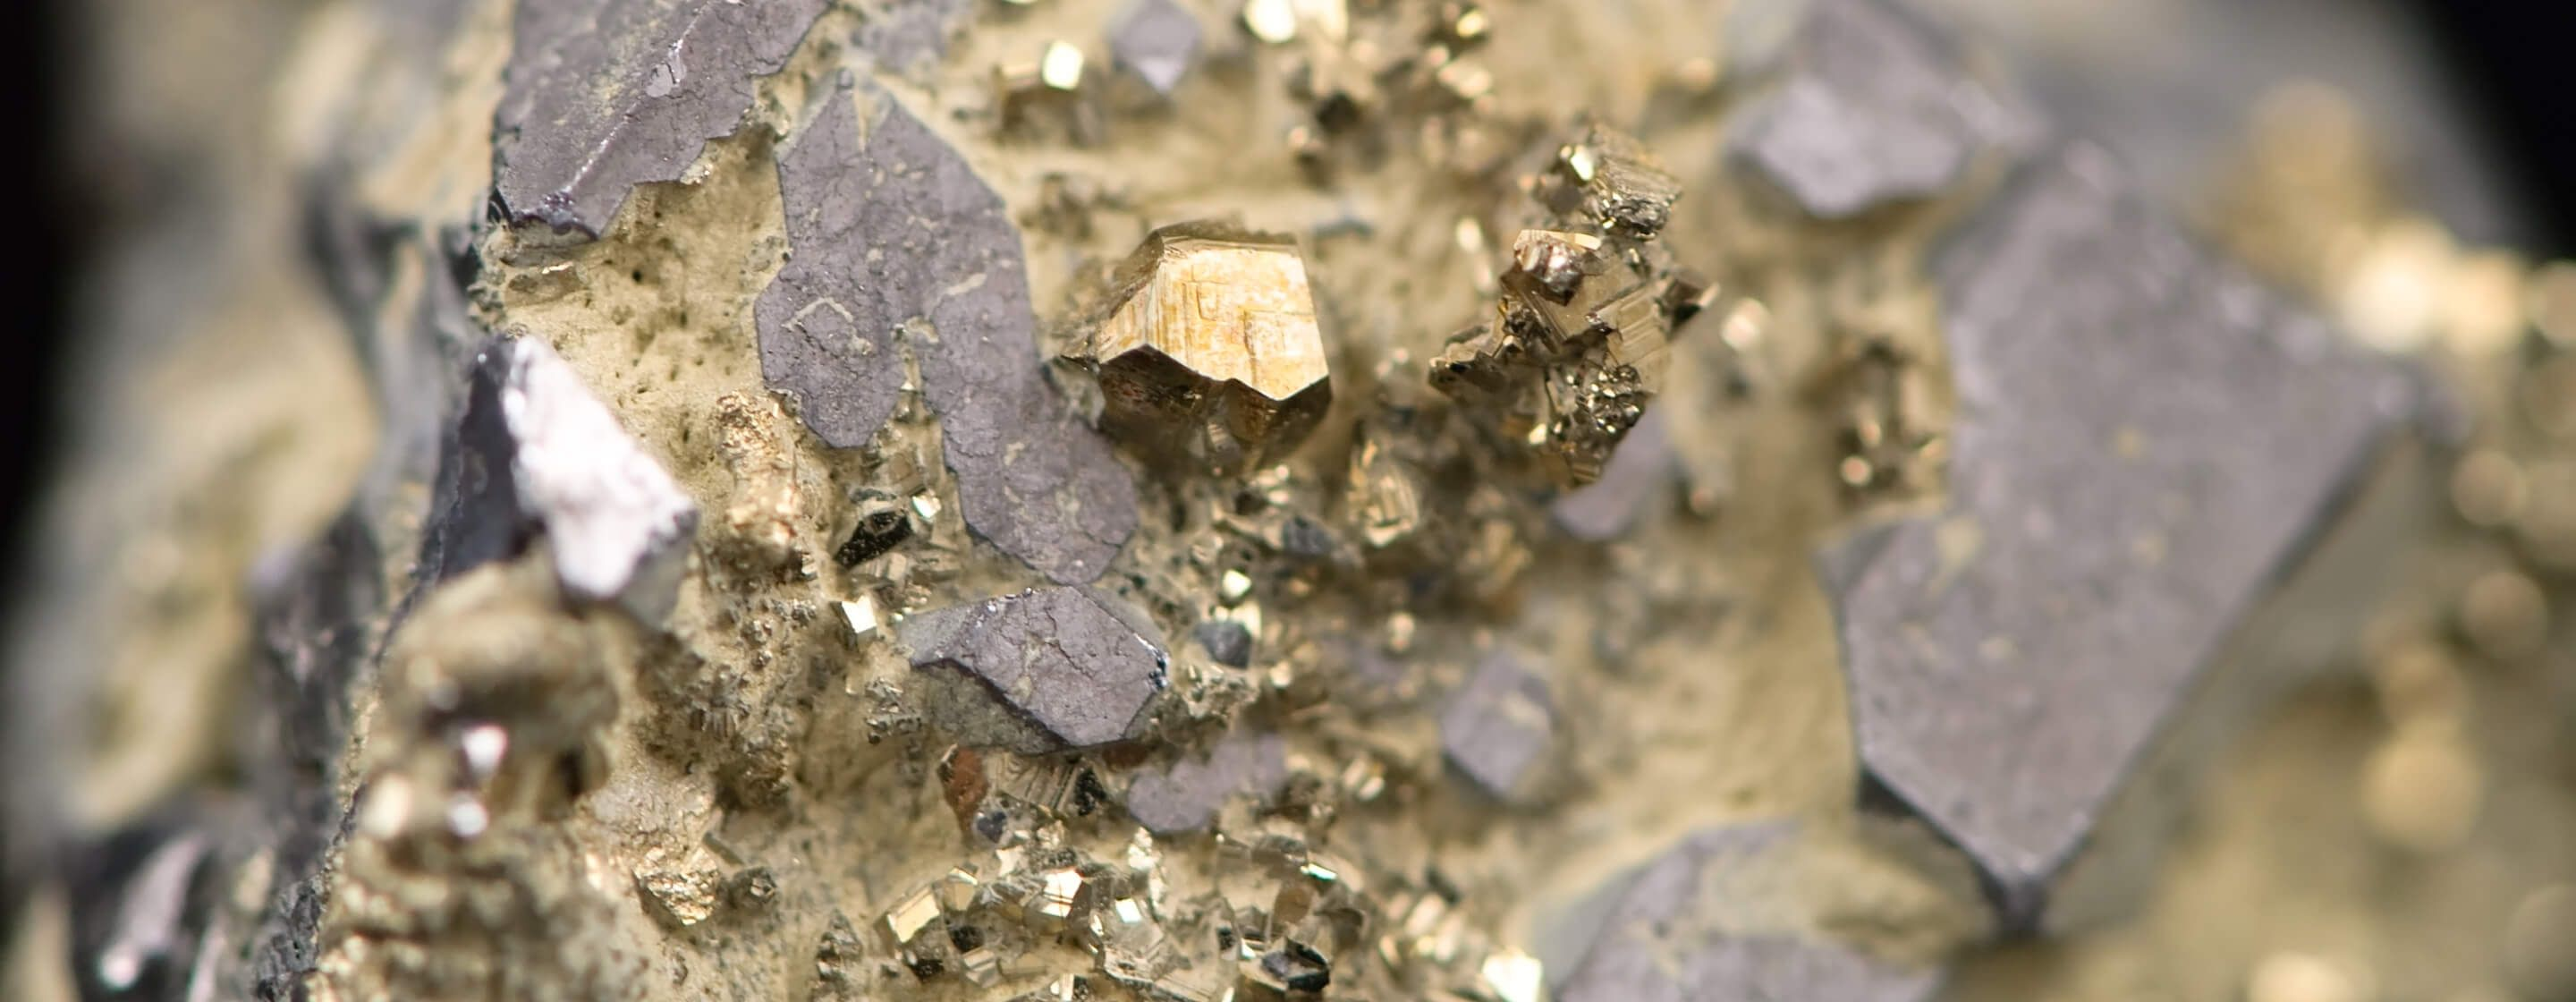 Extreme close-up of raw gold in its mineral form in mother rock from gold mining